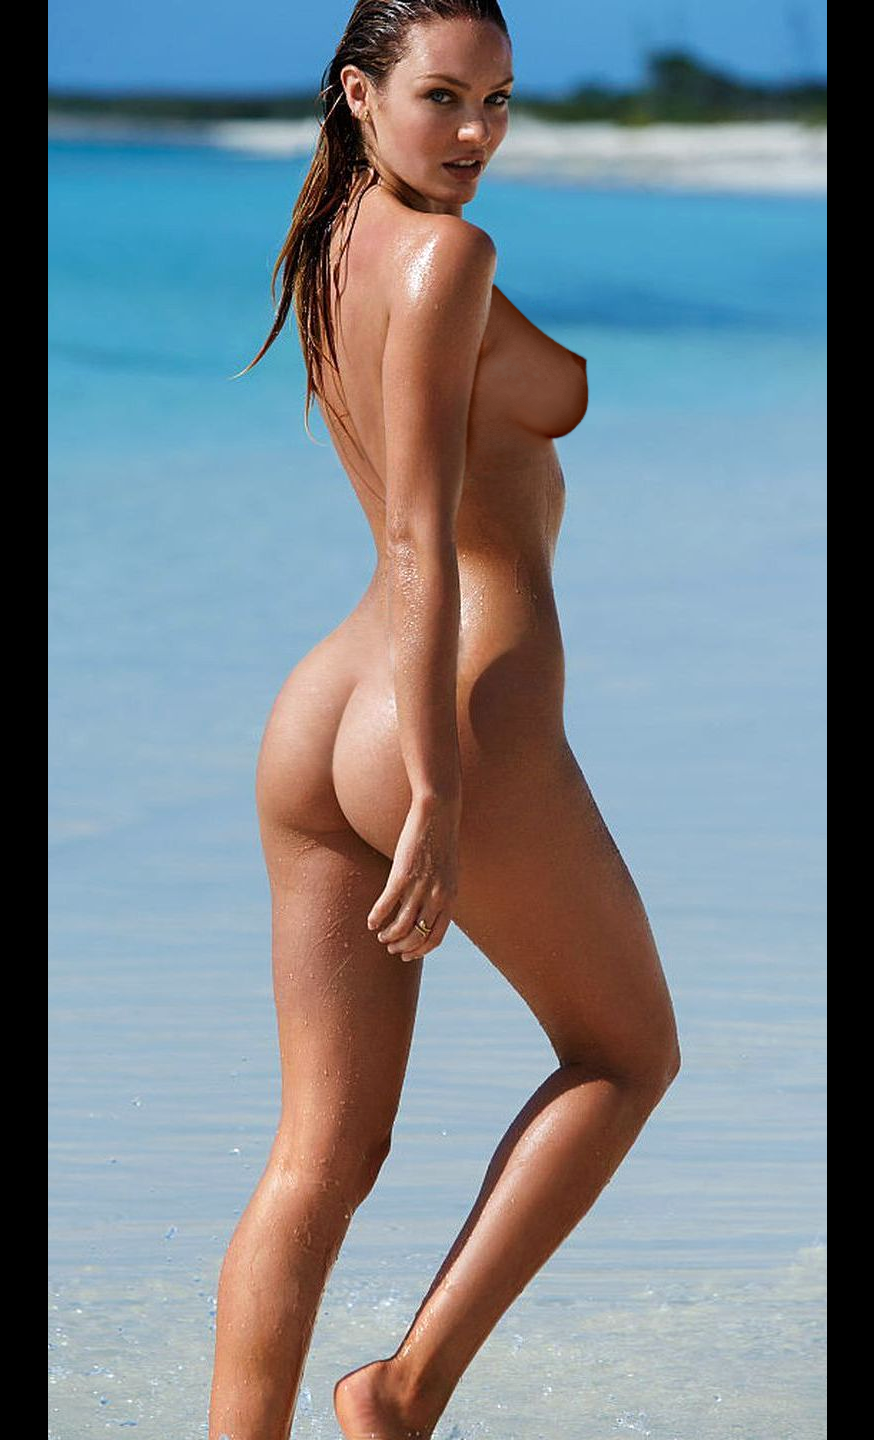 Candace Swanepoel Nackt foto 1